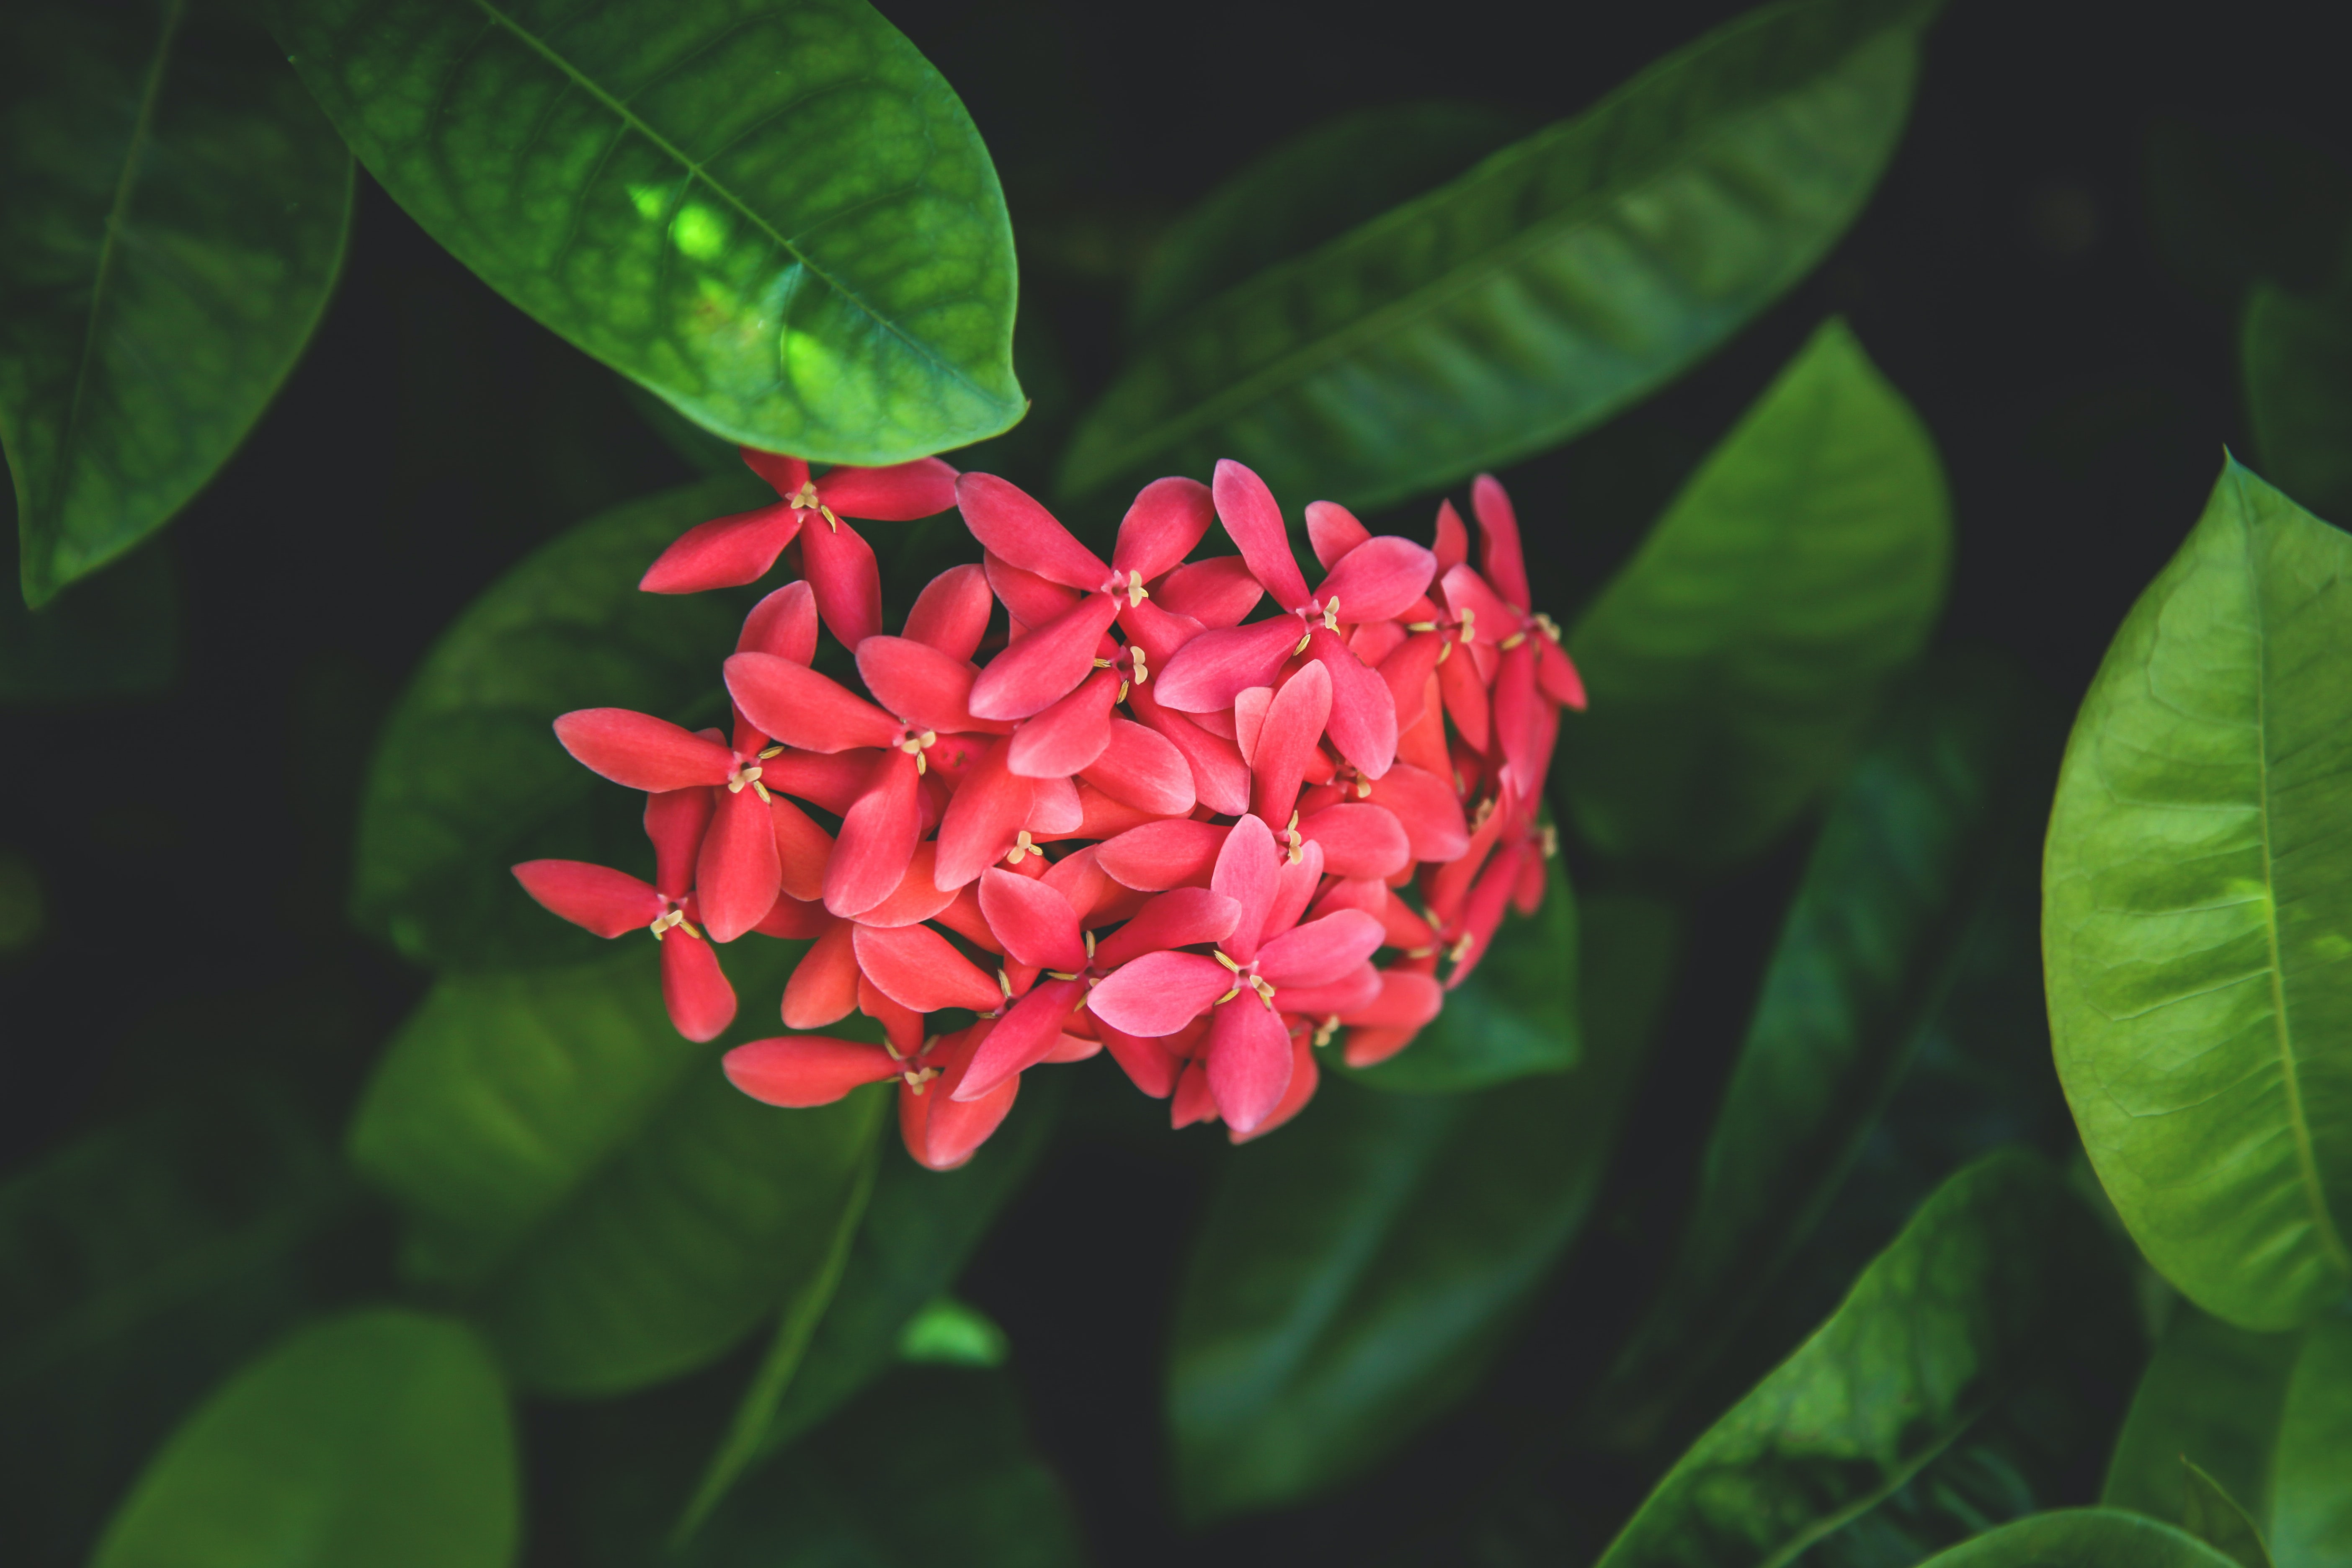 closeup photography of red petaled flowers